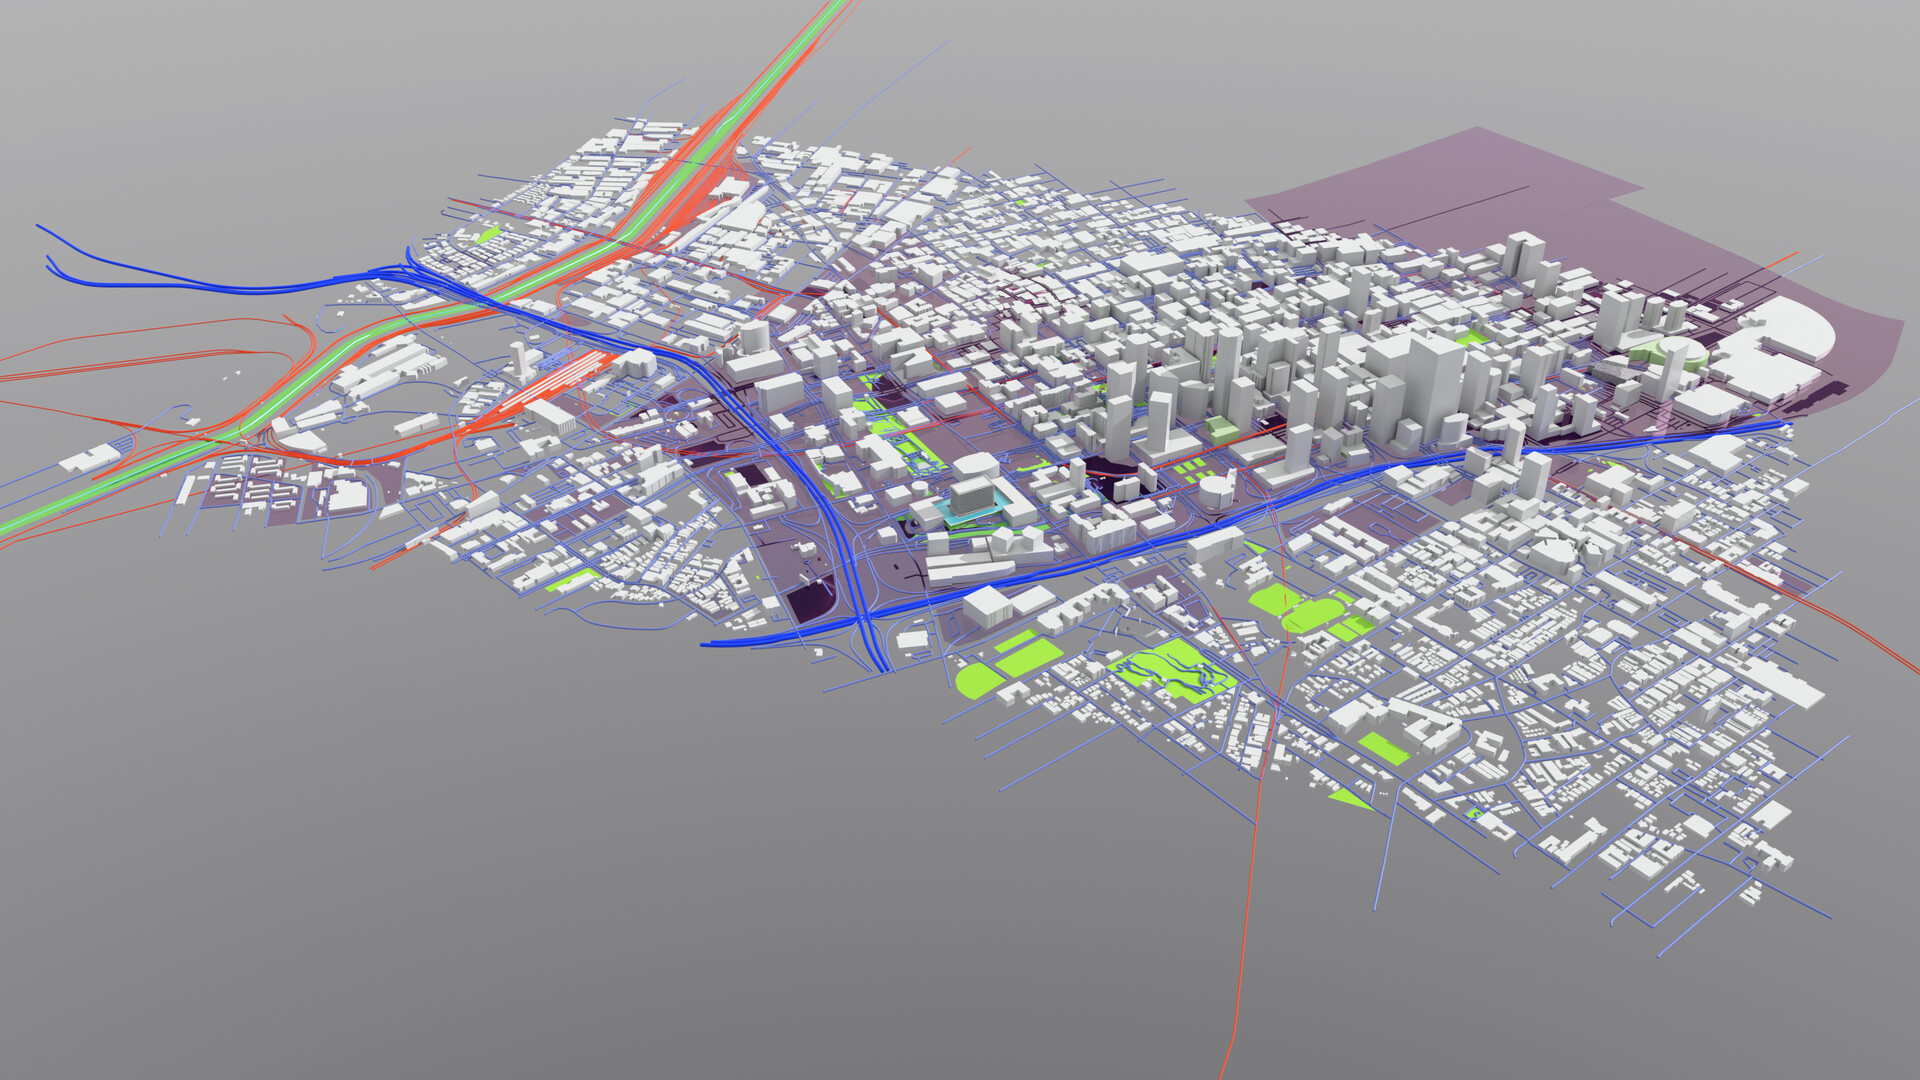 This is a perspective view of a GIS Specialist or Urban Planner's understanding of downtown Los Angeles